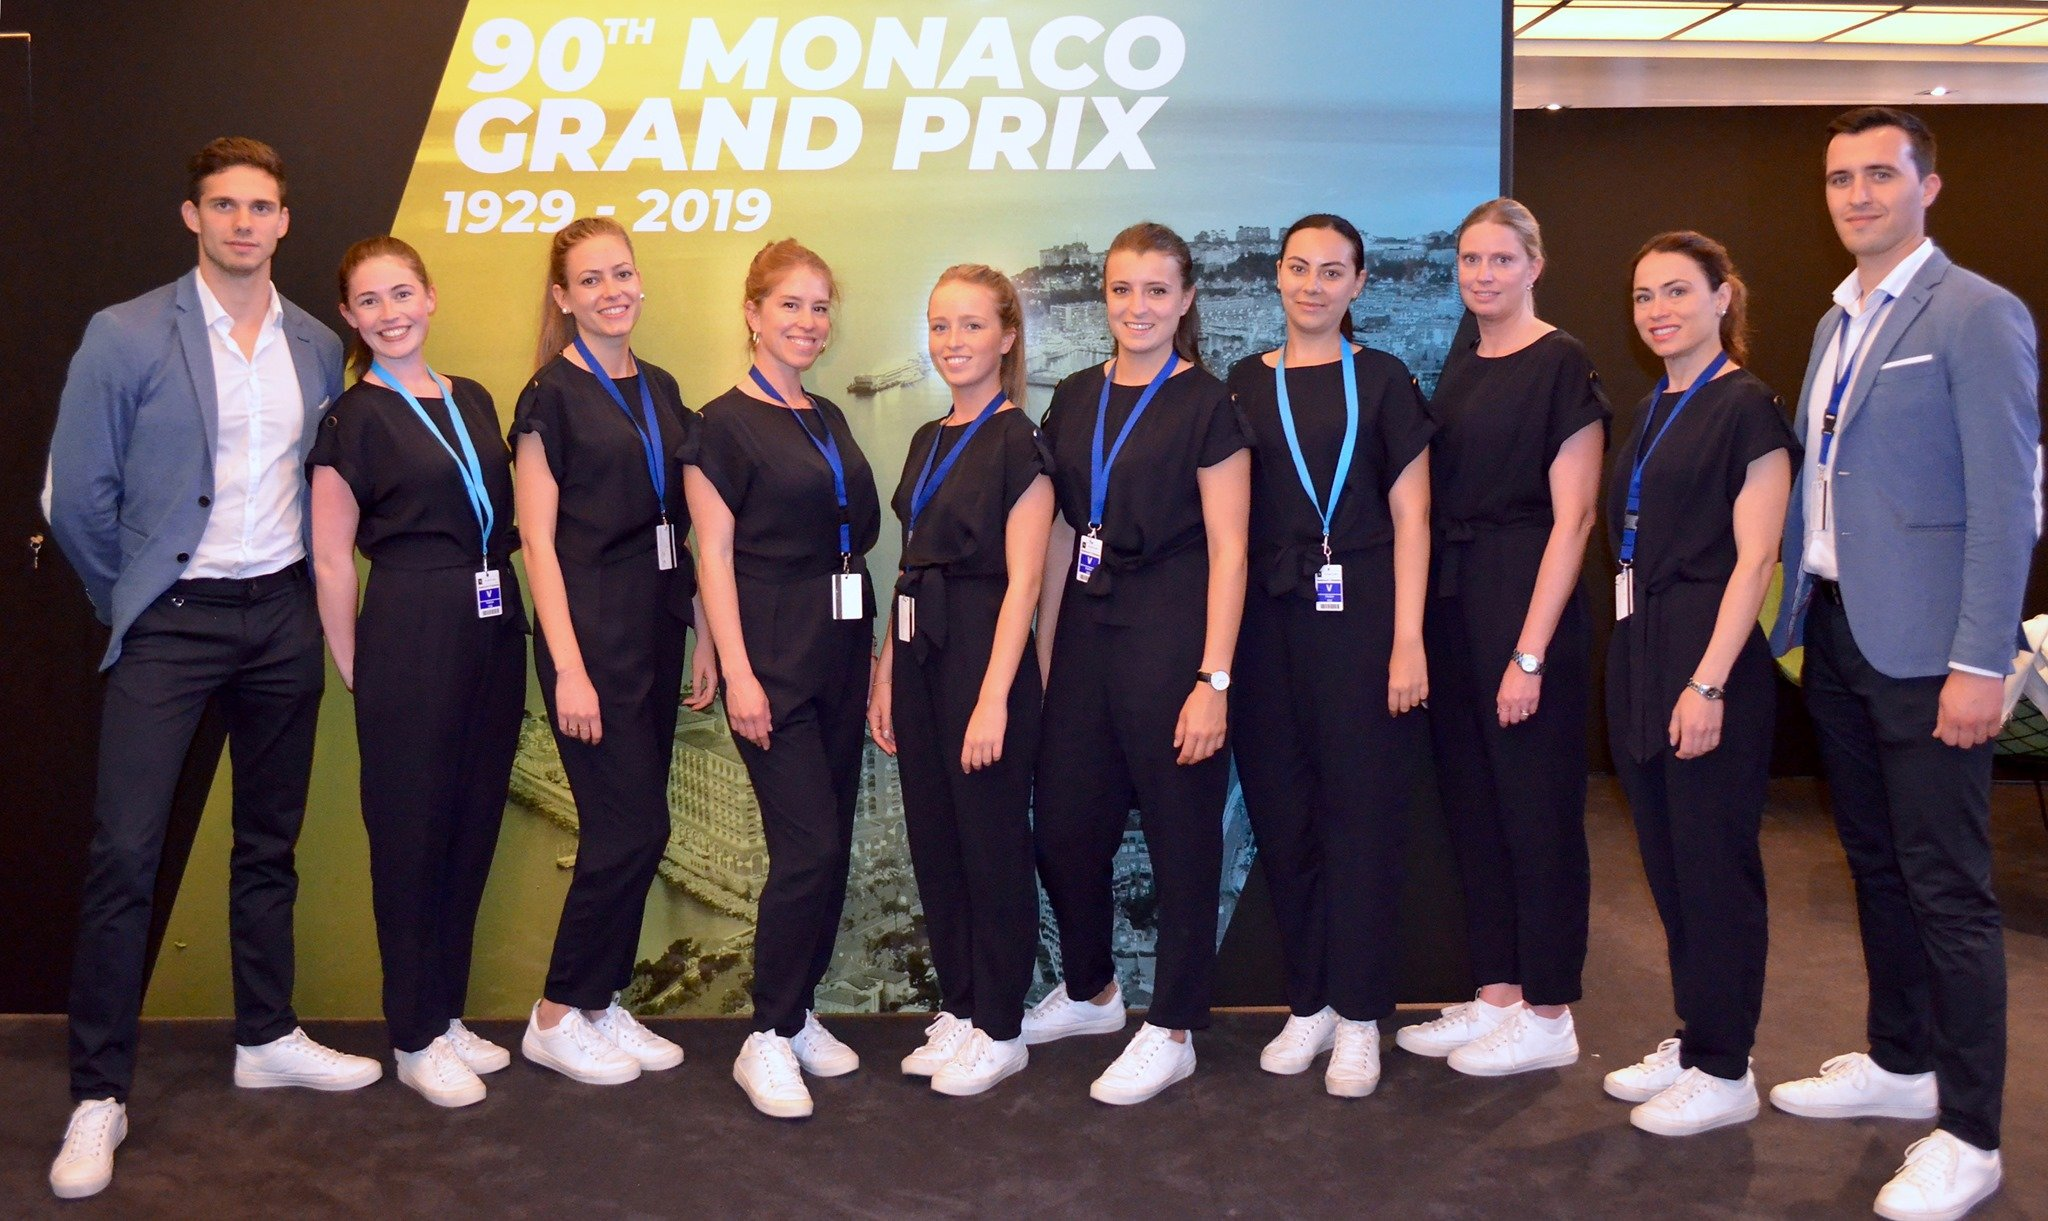 Event Staff Agency for the Monaco Grand Prix